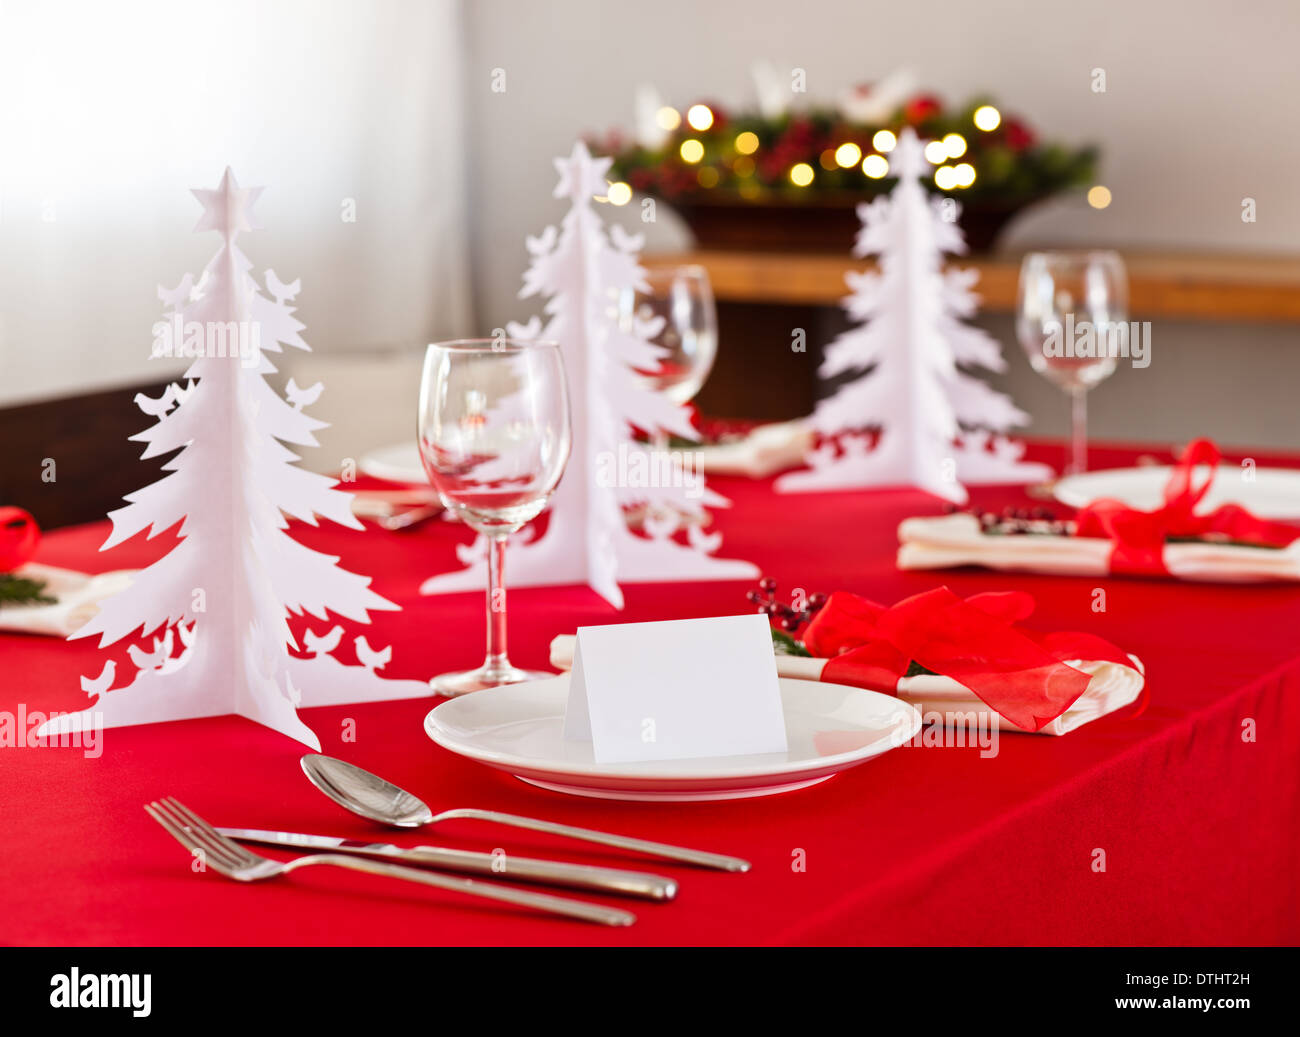 Christmas Dinner Table Setup With Decoration On The Side Board Stock Photo Alamy